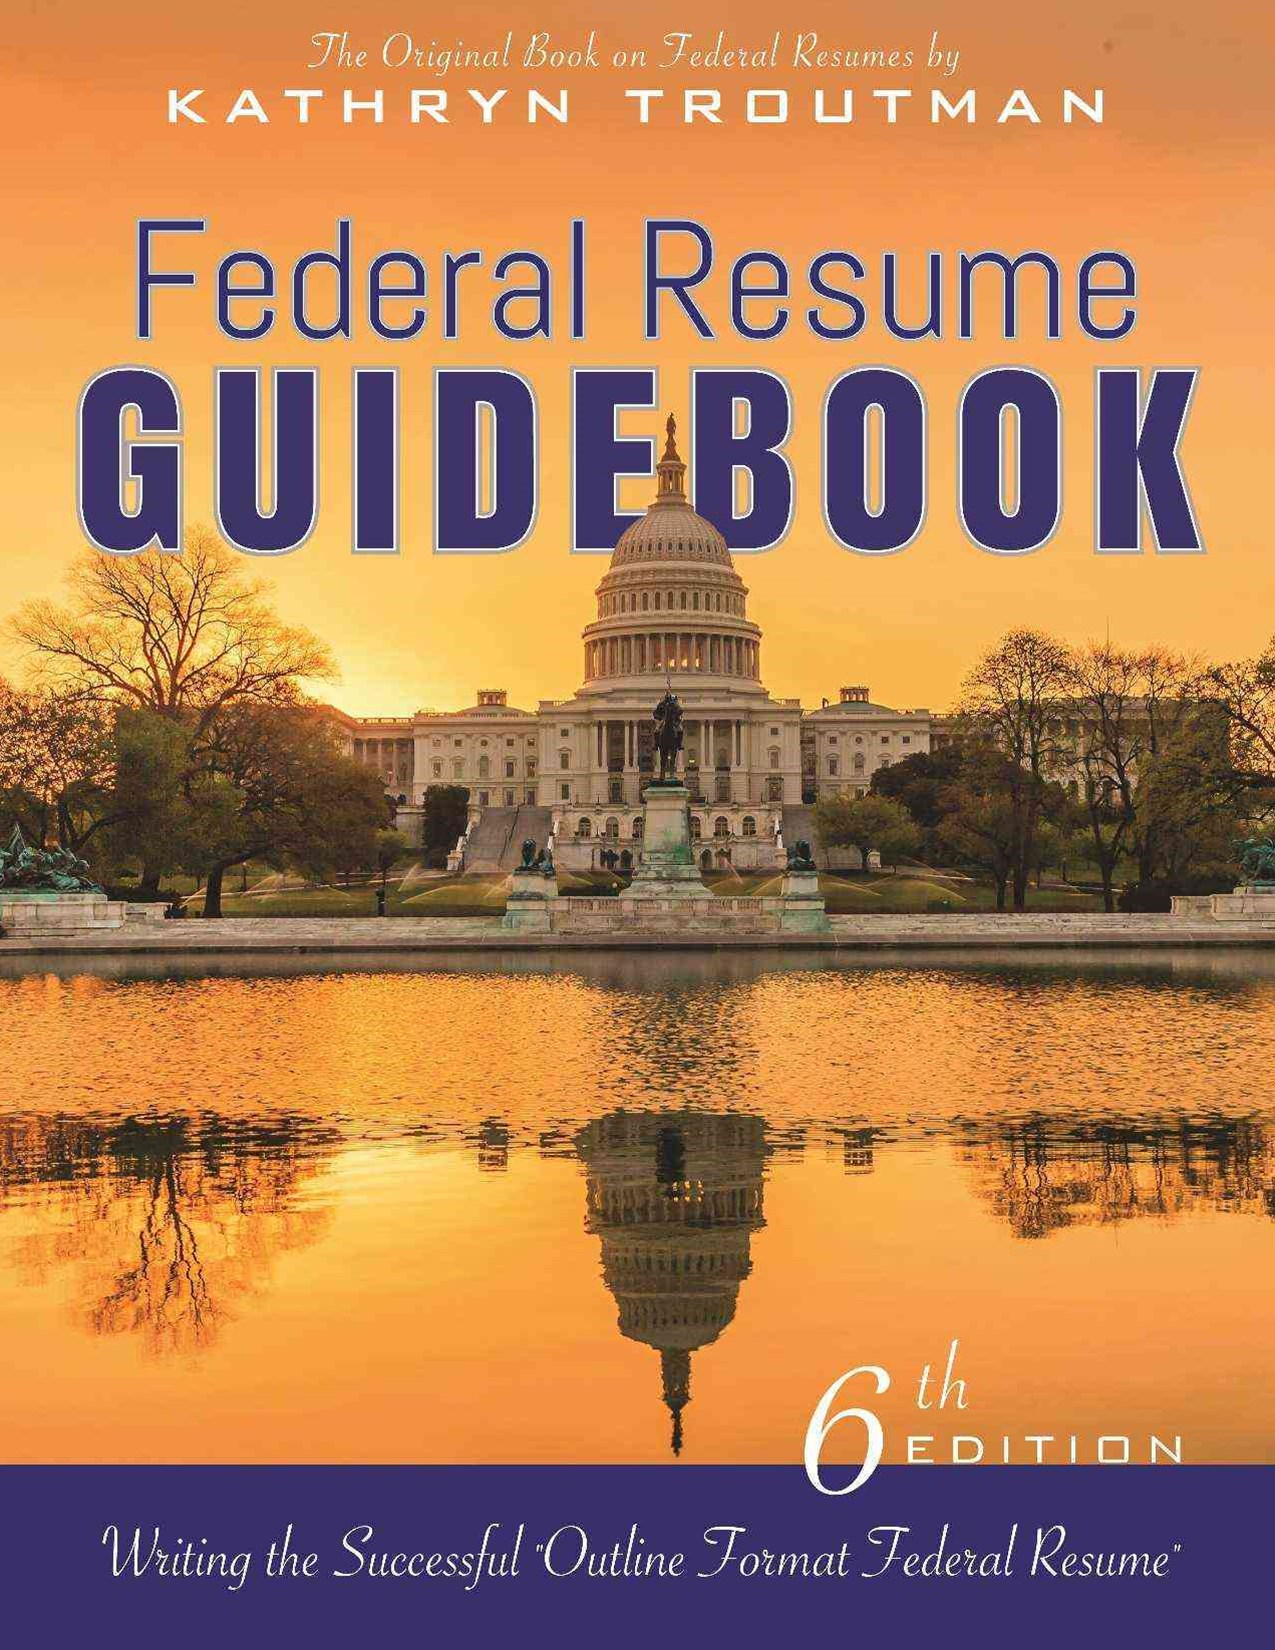 Federal Resume Guidebook, 6th Edition